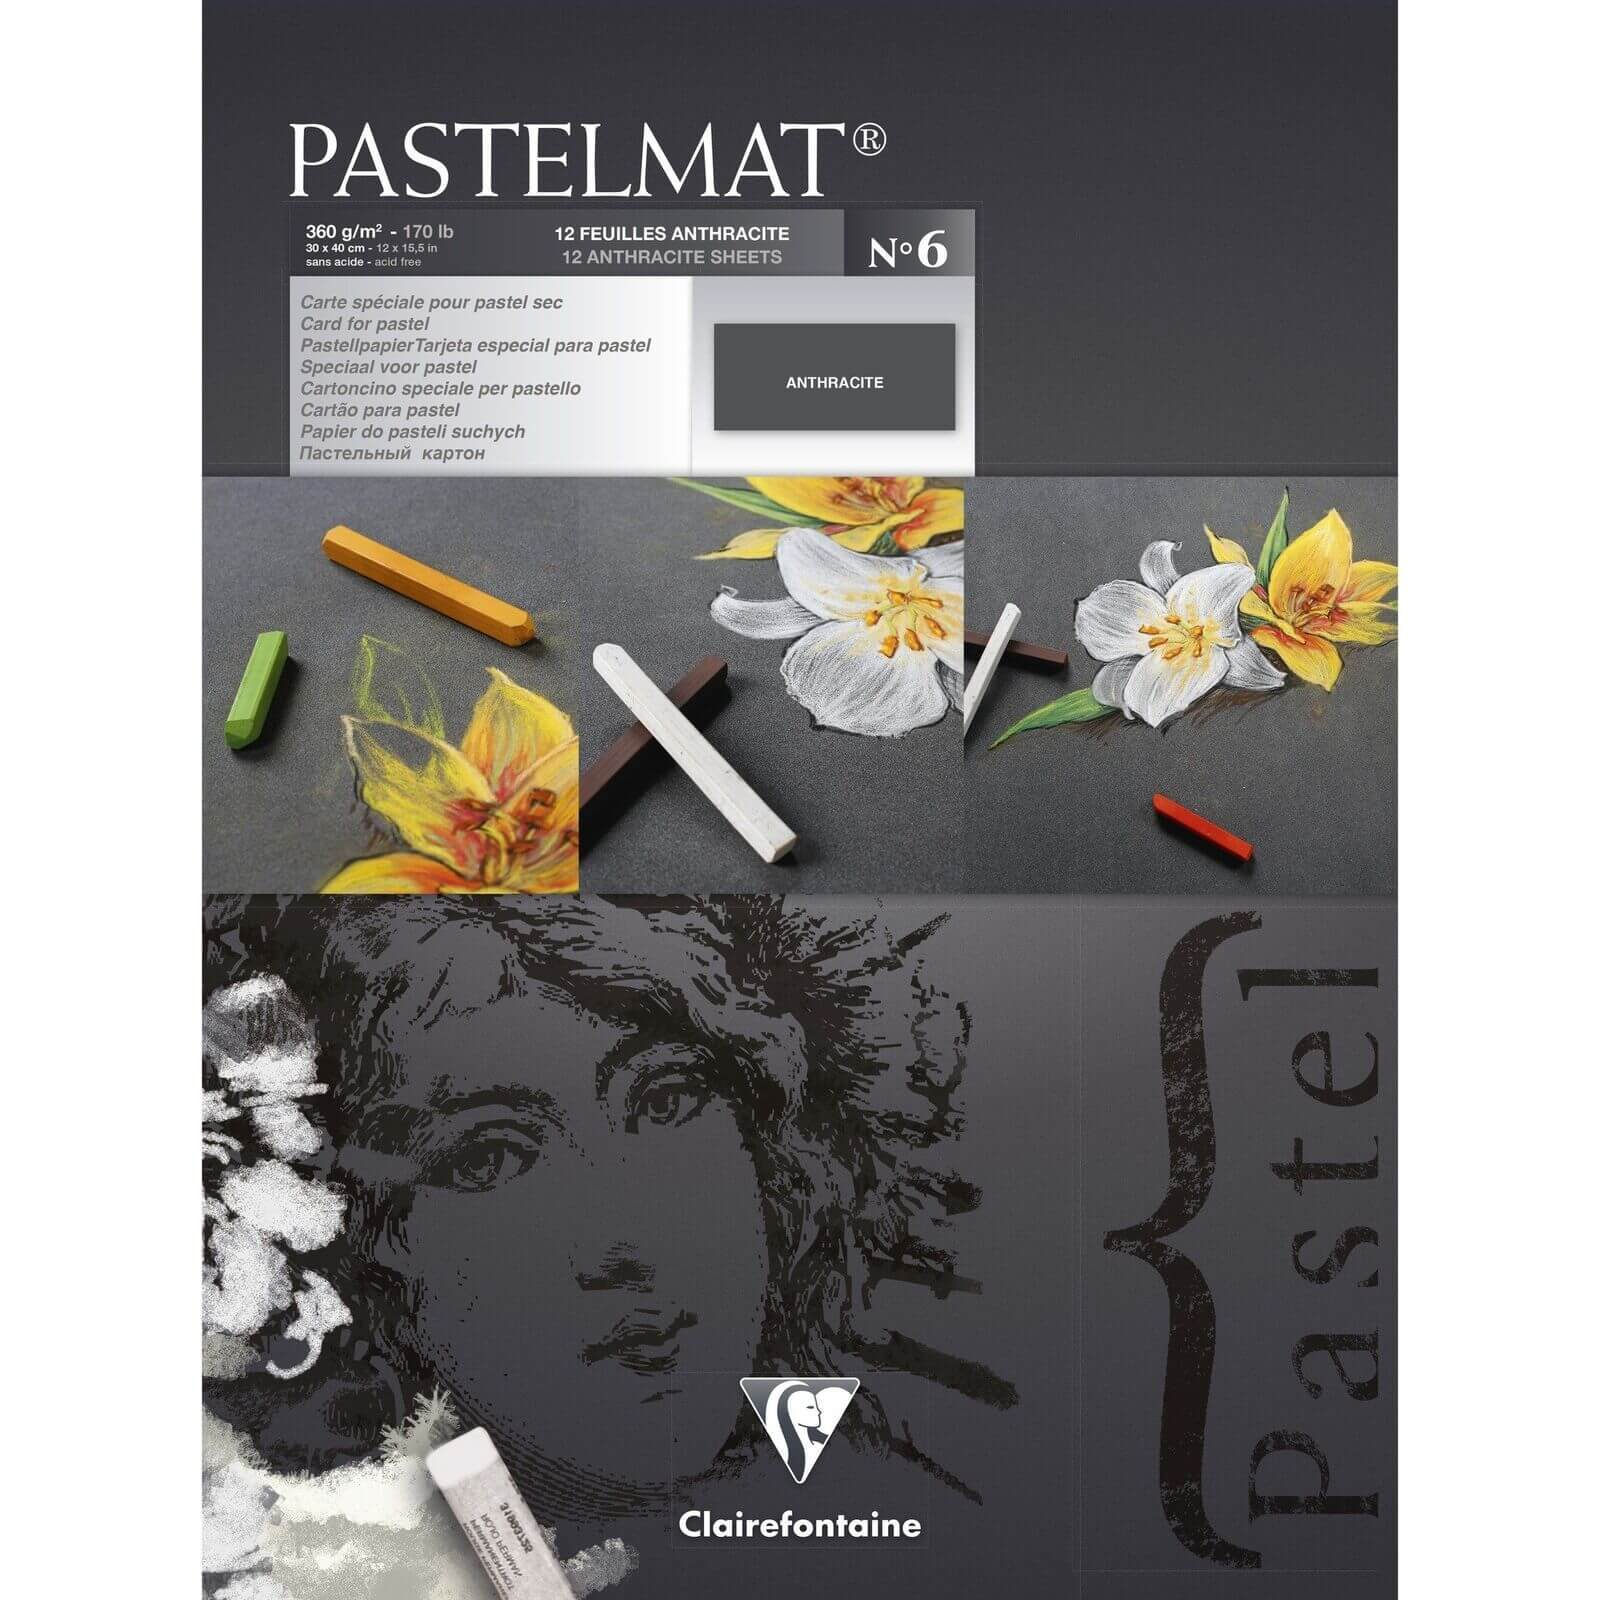 Clairefontaine Pastelmat Pad Anthracite - 360g - 30x40cm - 12 Sheets - Grey Cover